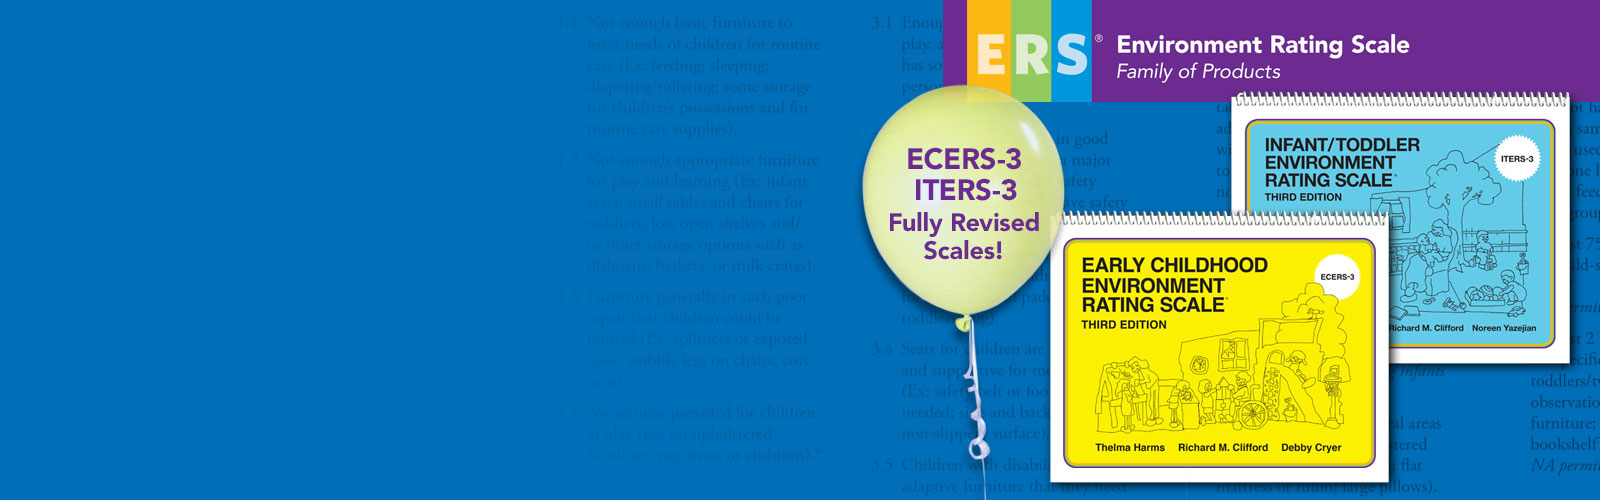 ERS: Environment Rating Scale® Family of Products